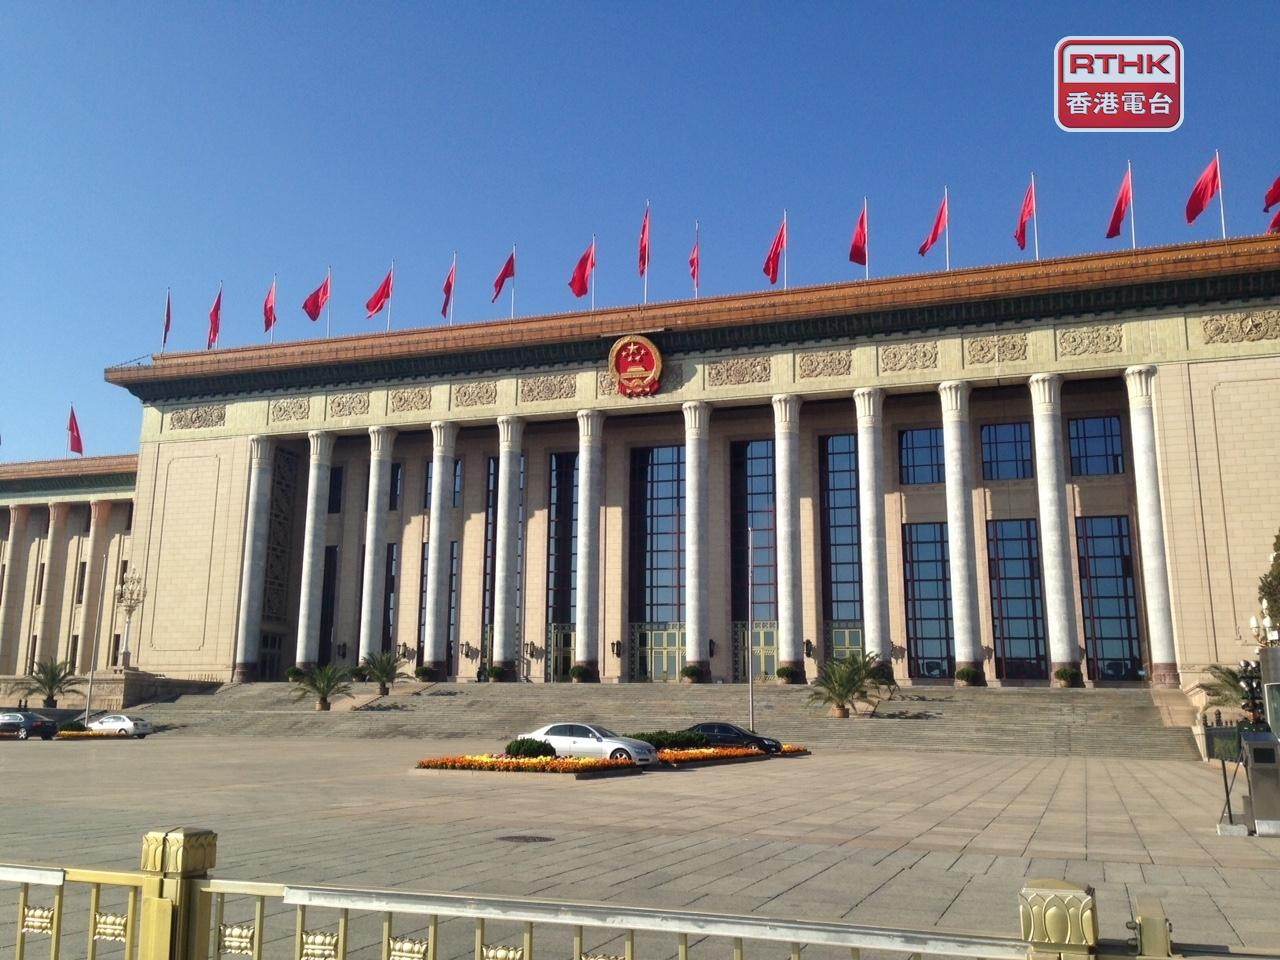 Beijing has been cracking down on corruption among officials. File photo: RTHK